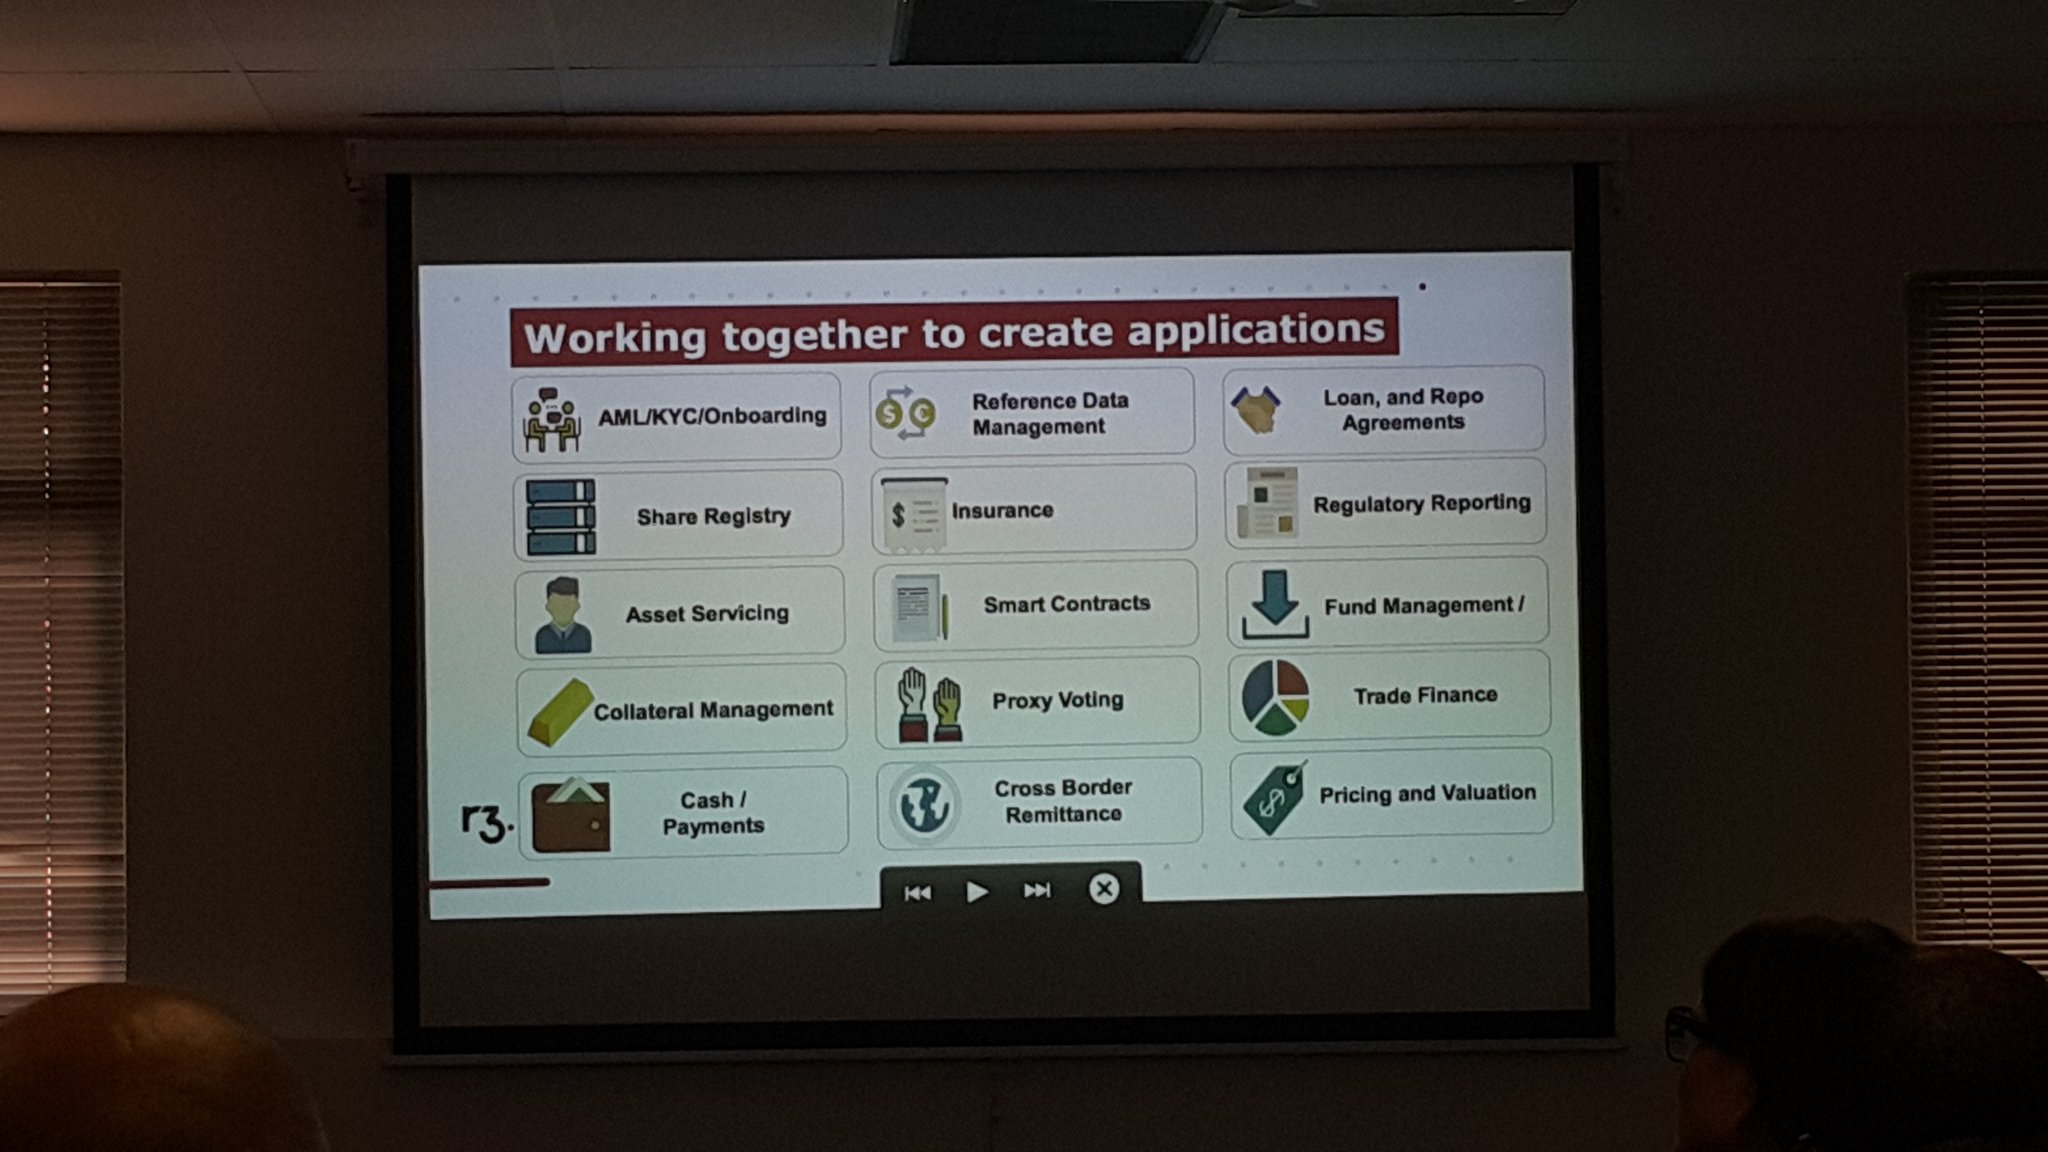 @R3CEV creating apps/value in a wide number of key areas see pic @blockchainza #BAC17 #Corda https://t.co/8G4t2KJUic